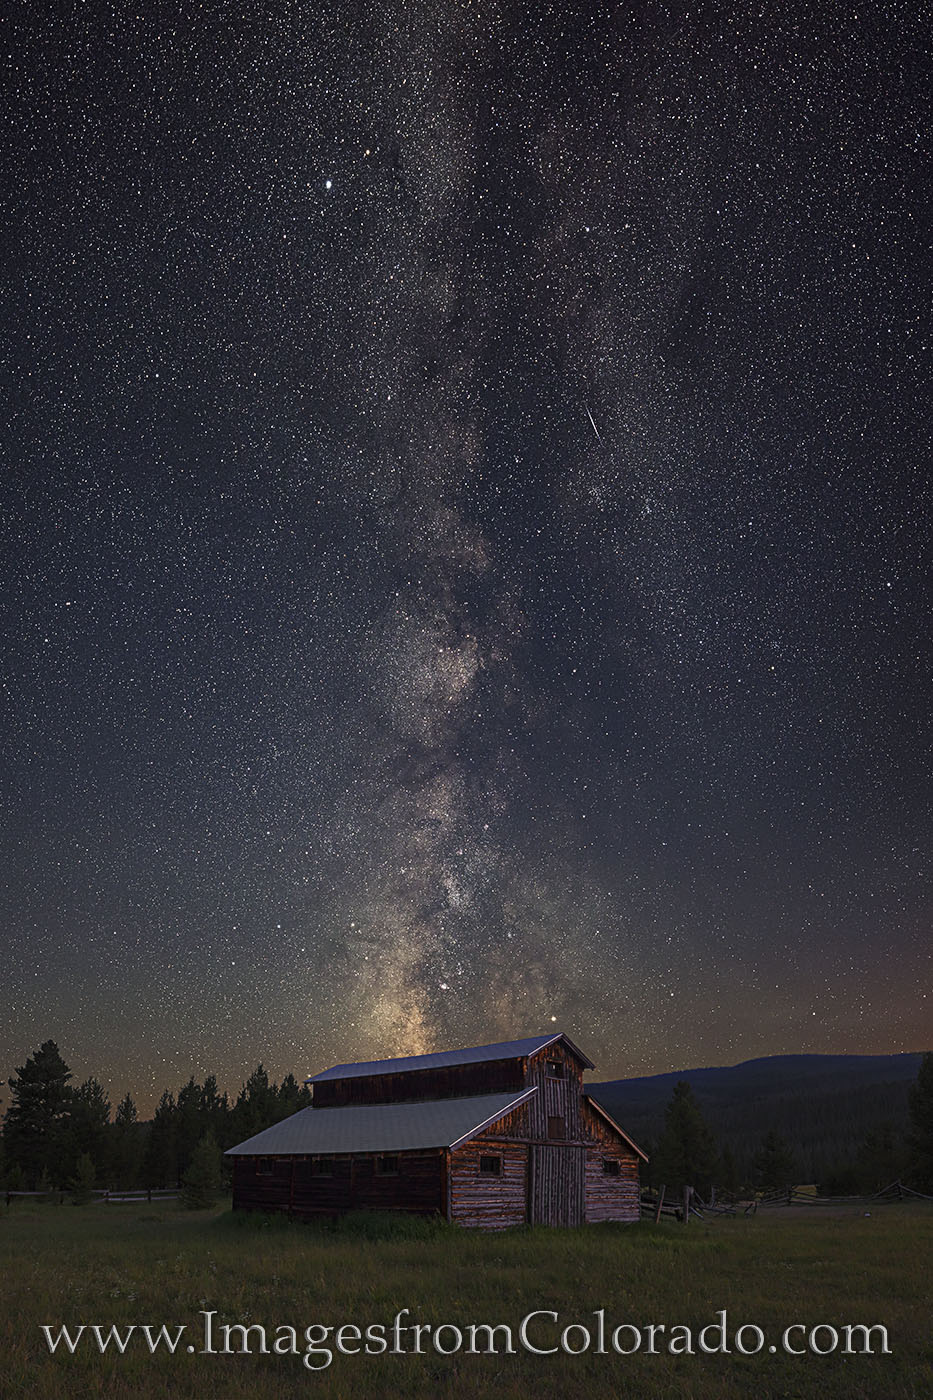 rocky mountain national park, milky way, betty dick, buckaroo barn, grand lake, never summer mountains, Kawuneeche Valley, trail ridge road, summer, night sky, barn, photo